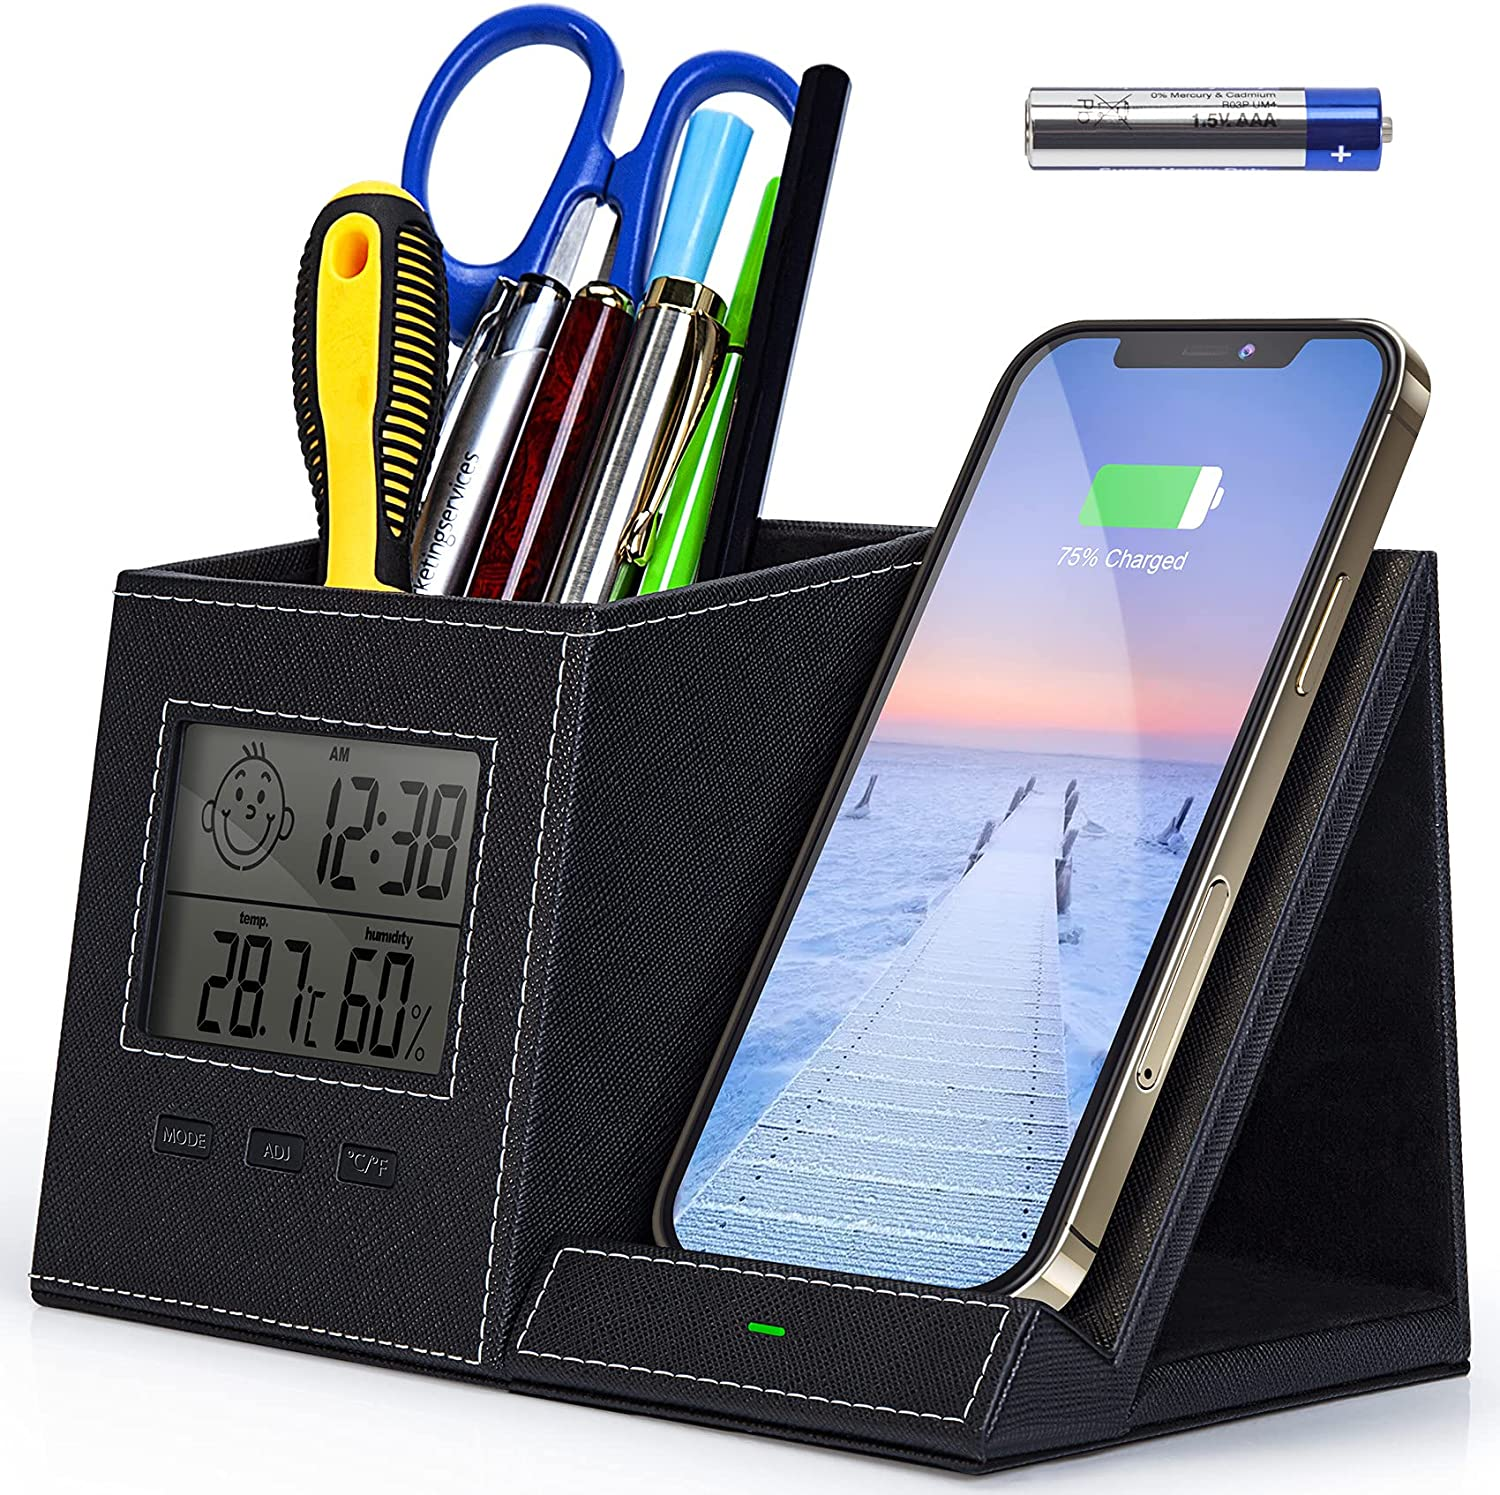 Pen Holder, Pen Organizer for Desk with Wireless Charger, Digital Indoor Thermometer and Humidity Gauge, Desk Organizers and Storage, Multifunctional Home Office Organizers for Desk (Battery Included)